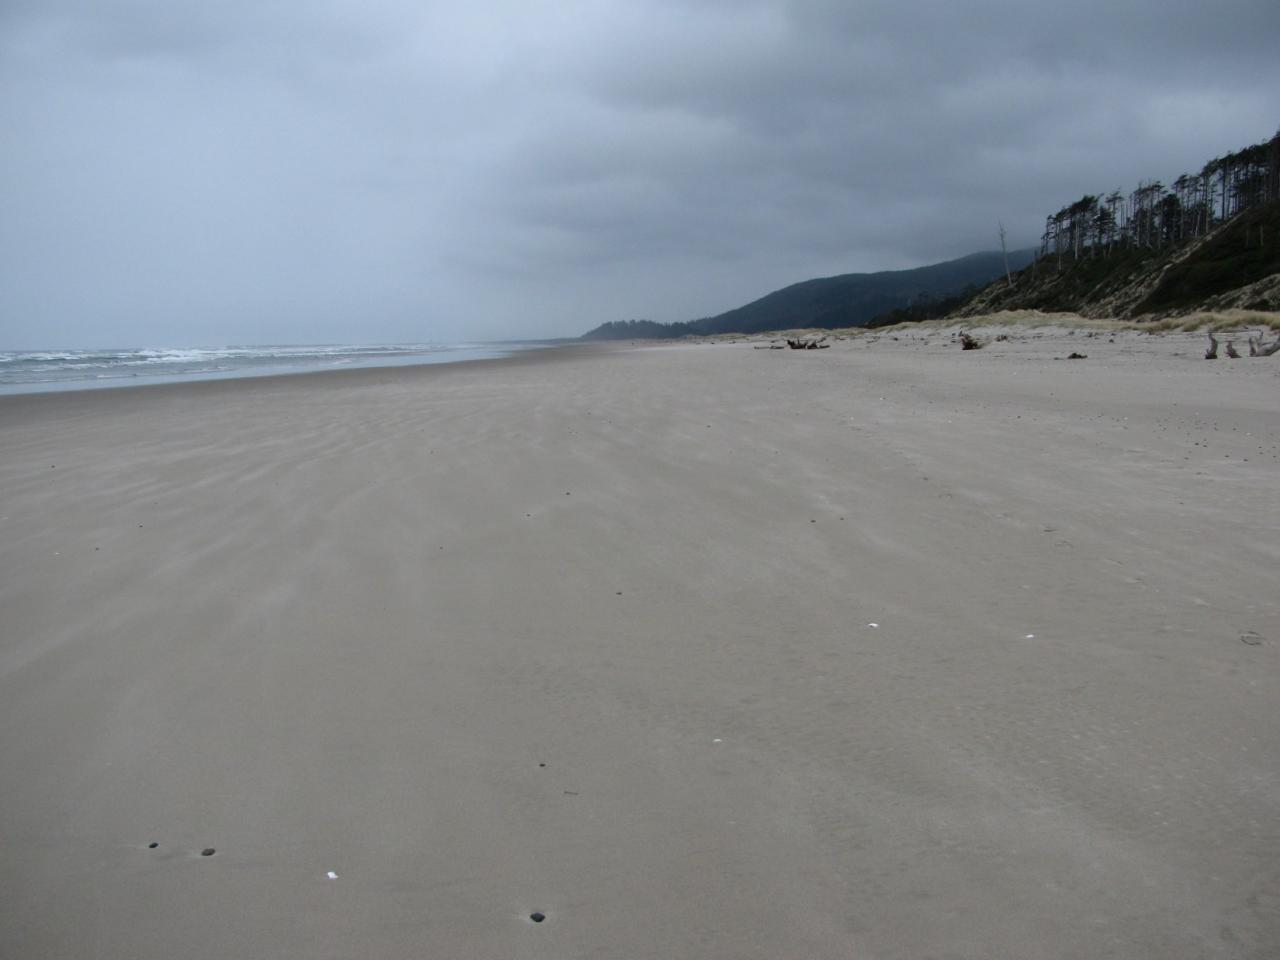 Taken from mile 287, view looking north toward south jetty of Tillamook Bay.